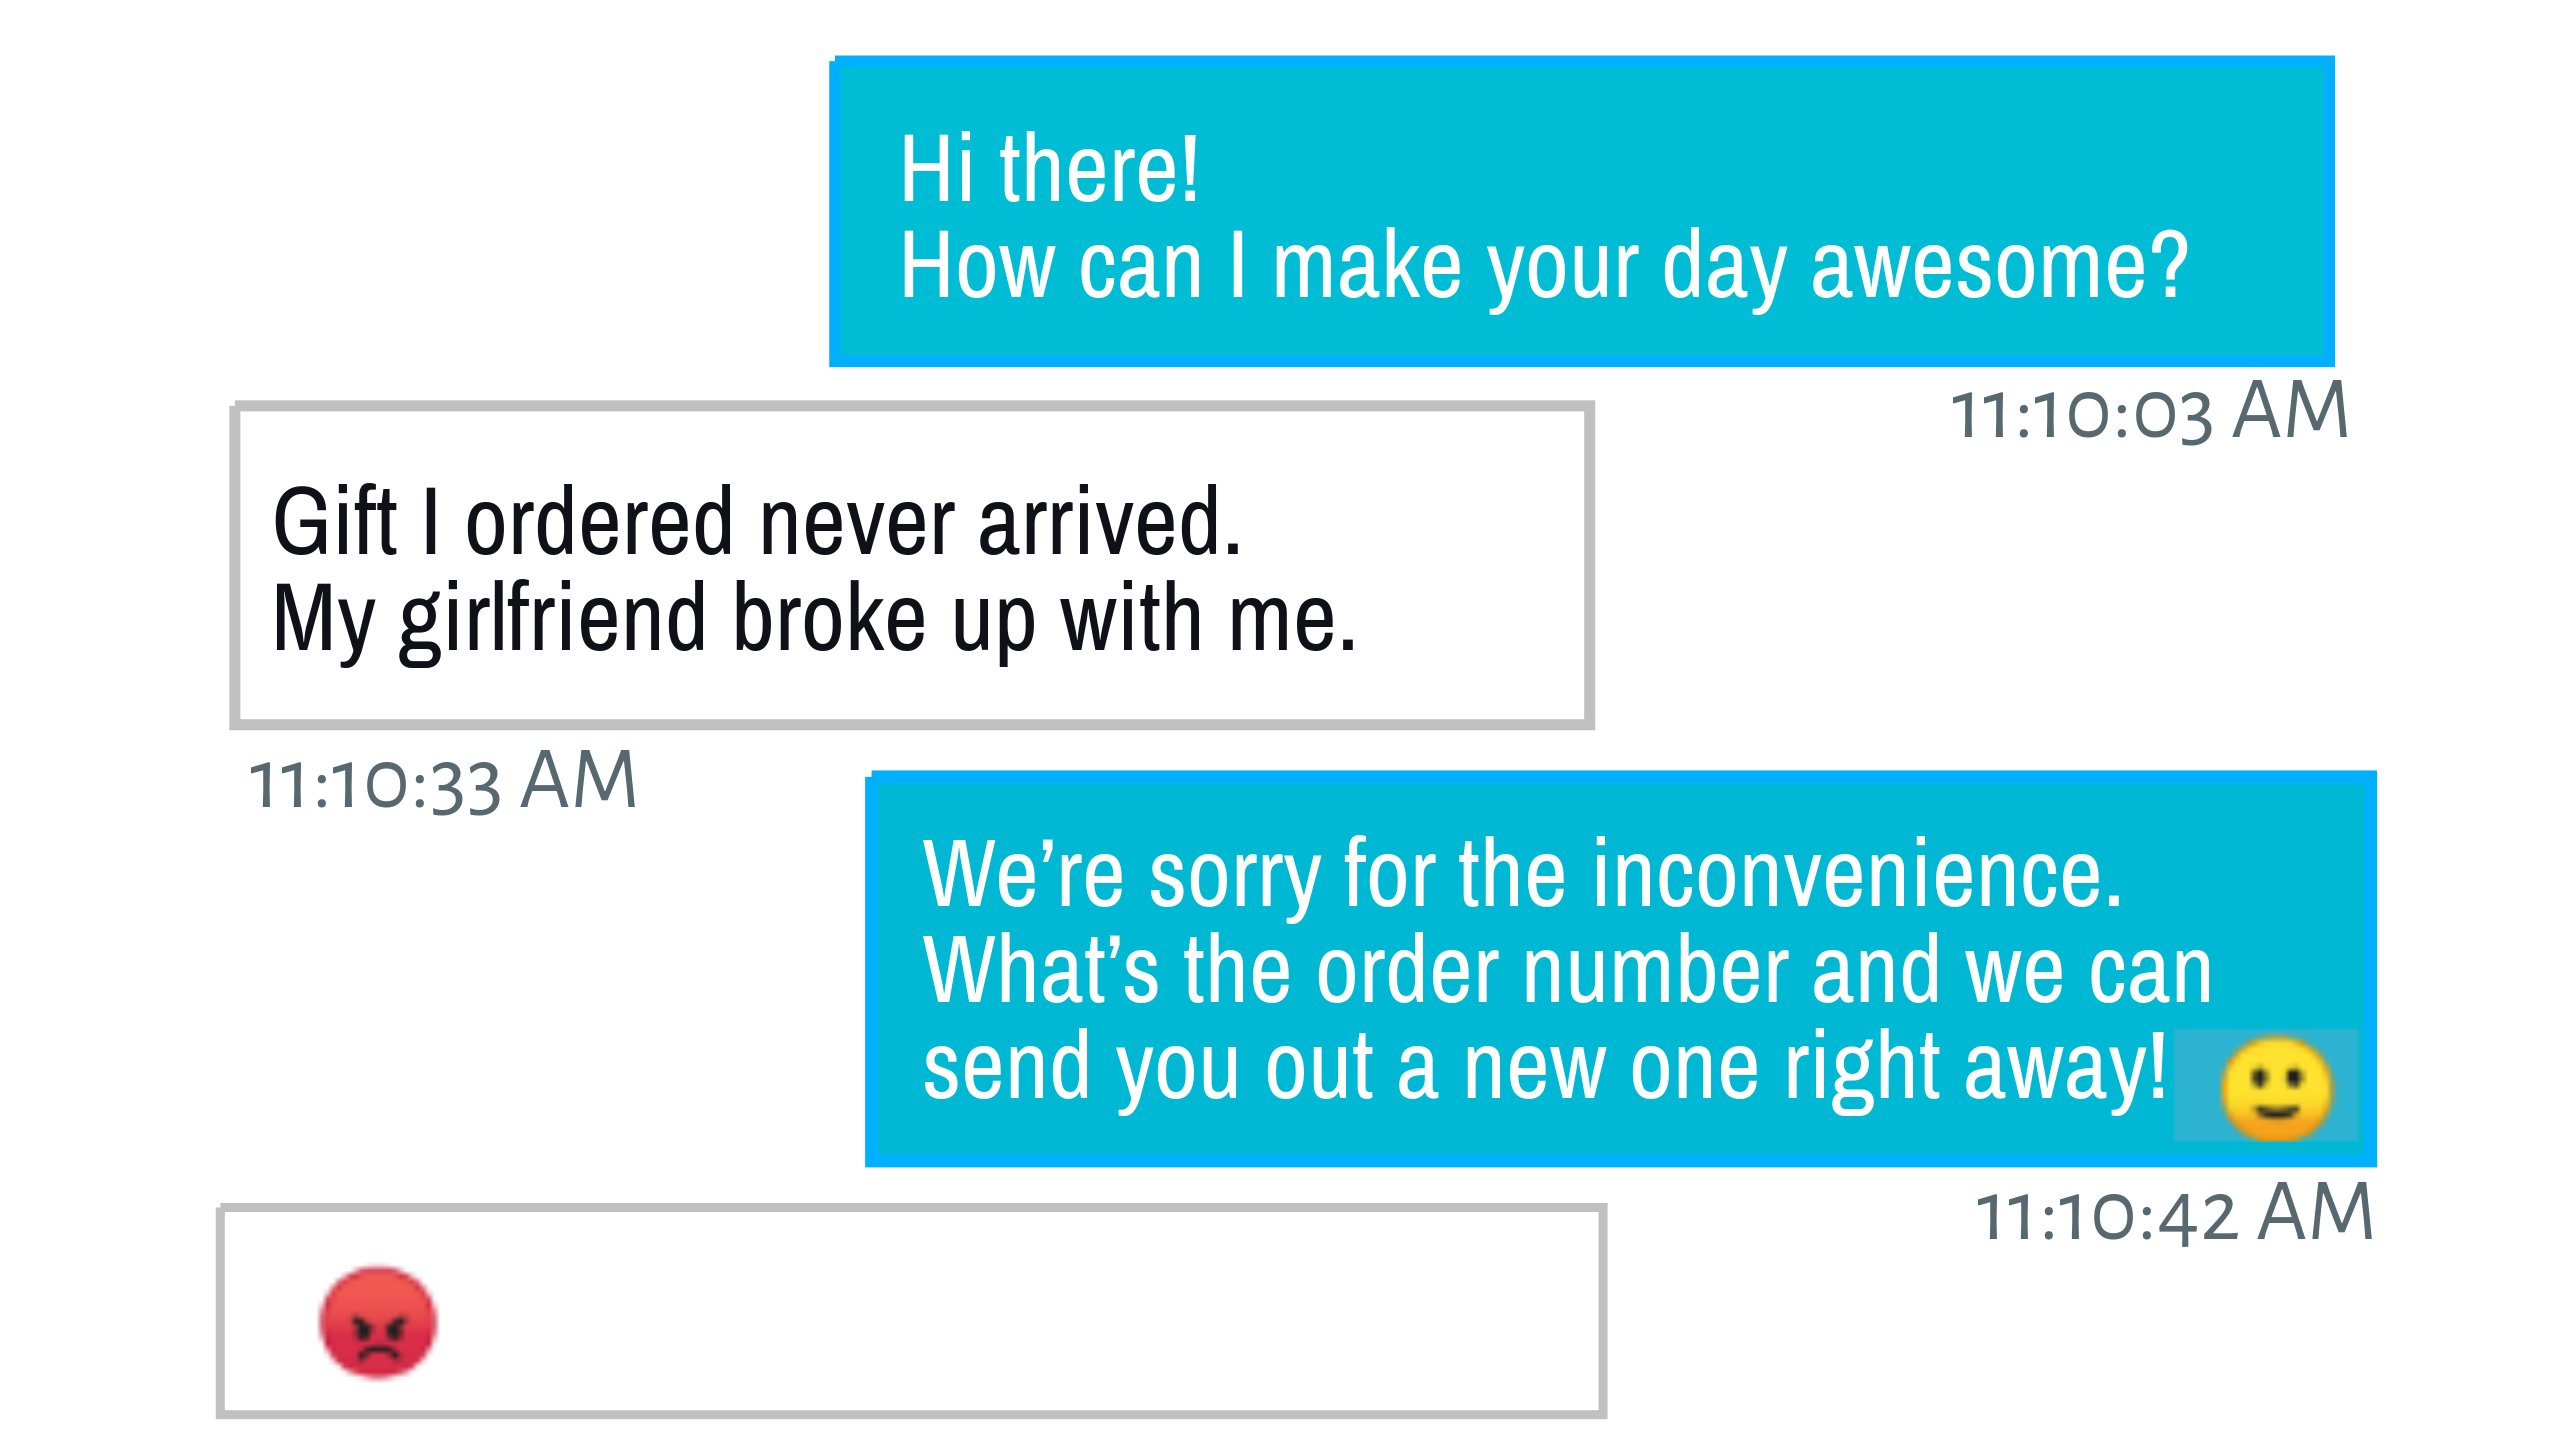 Customer service chat